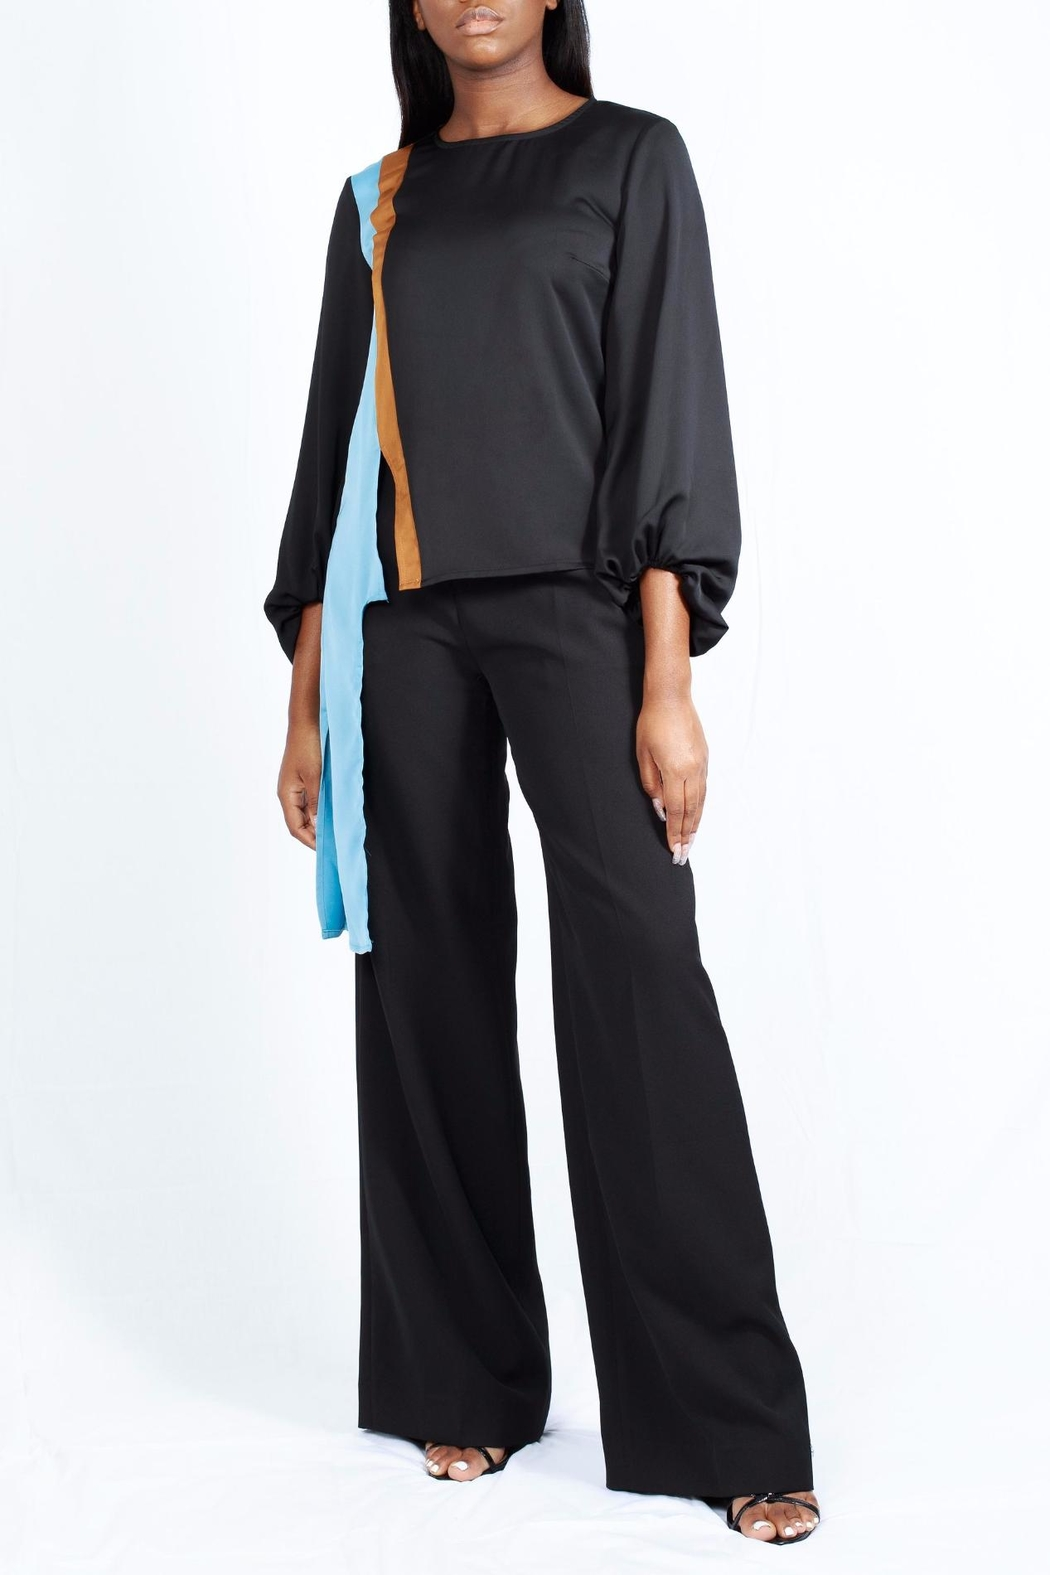 MODChic Couture Colorblock Striped Blouse - Main Image